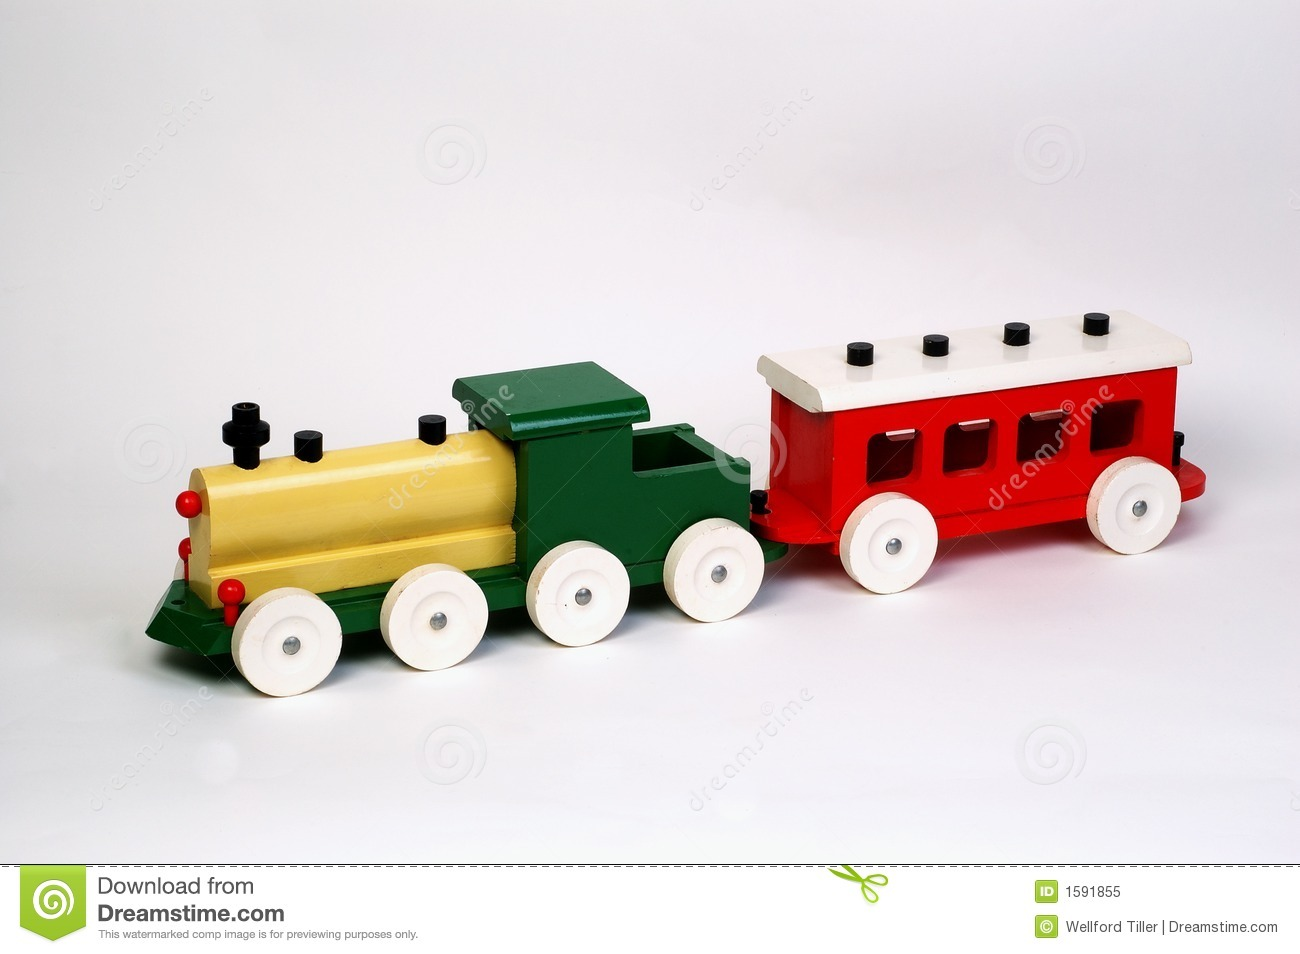 Toy Wooden Train Royalty Free Stock Photo - Image: 1591855